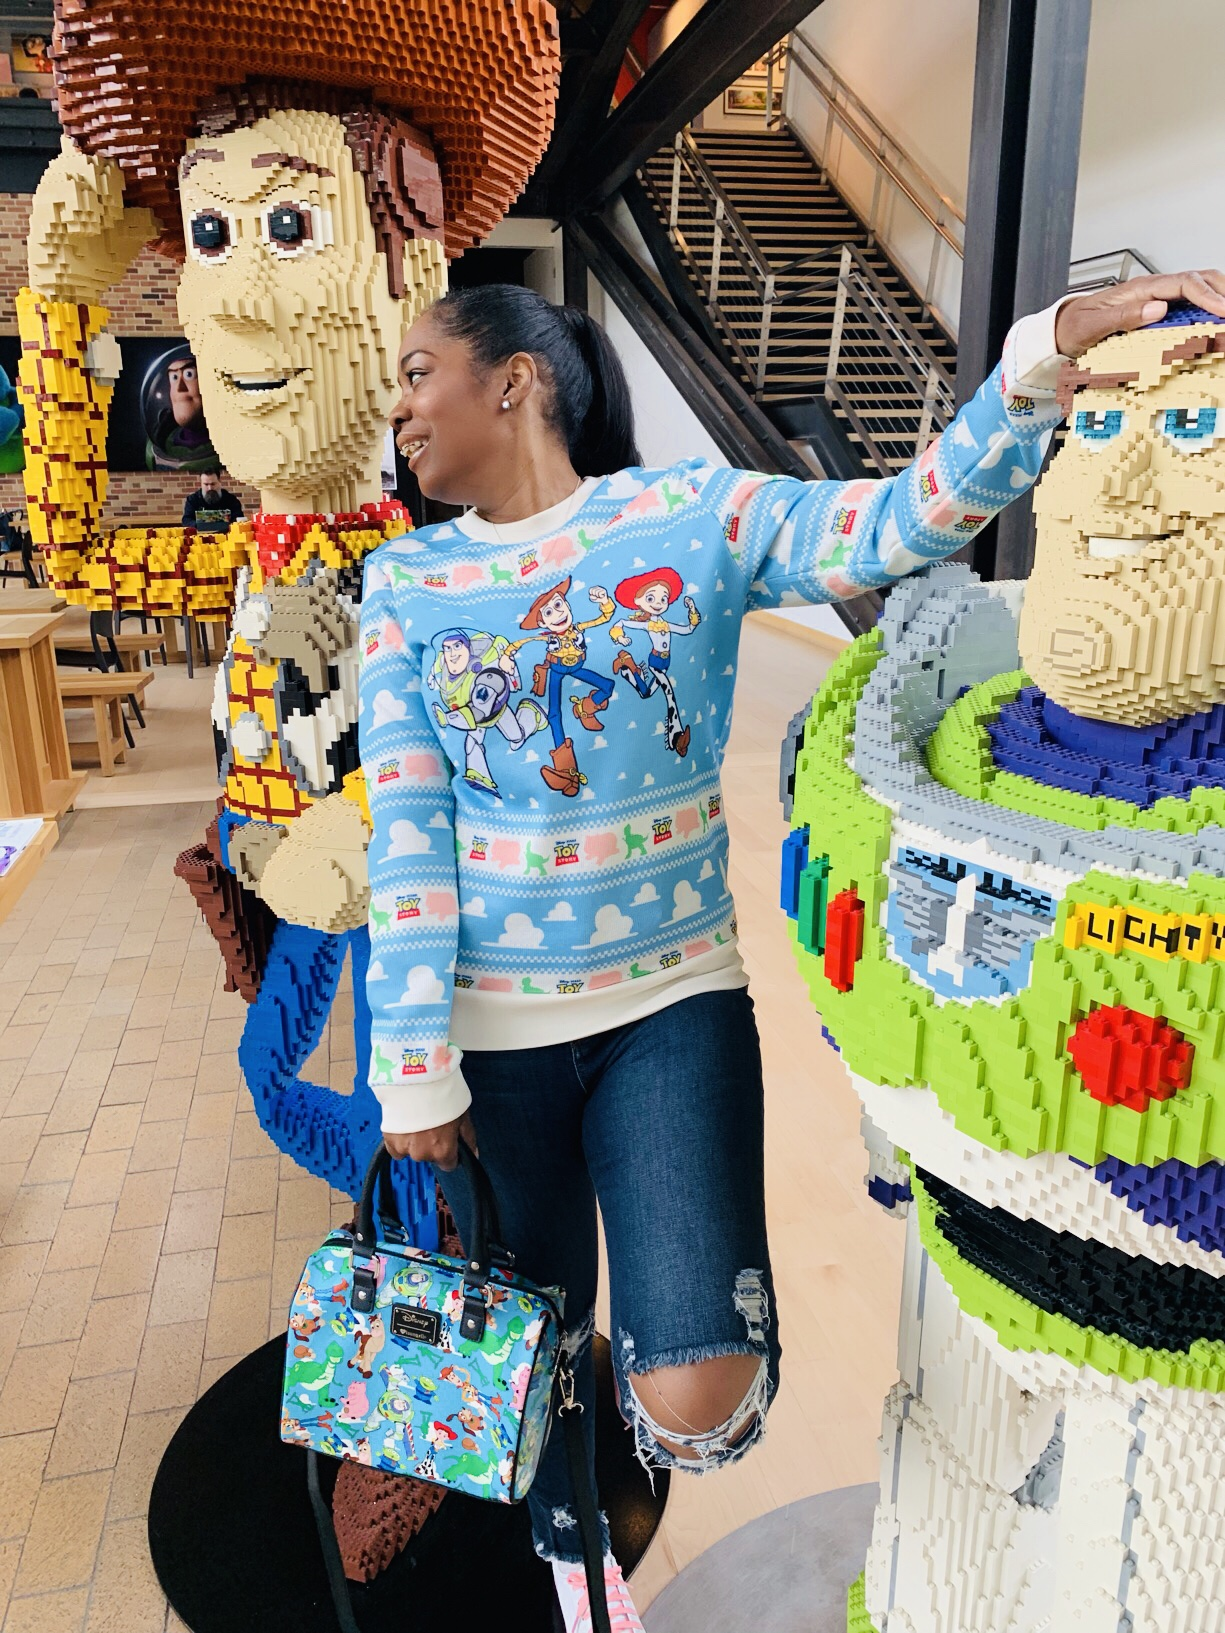 My Style: Toy Story Sweater & Purse While At Pixar Animation Studio